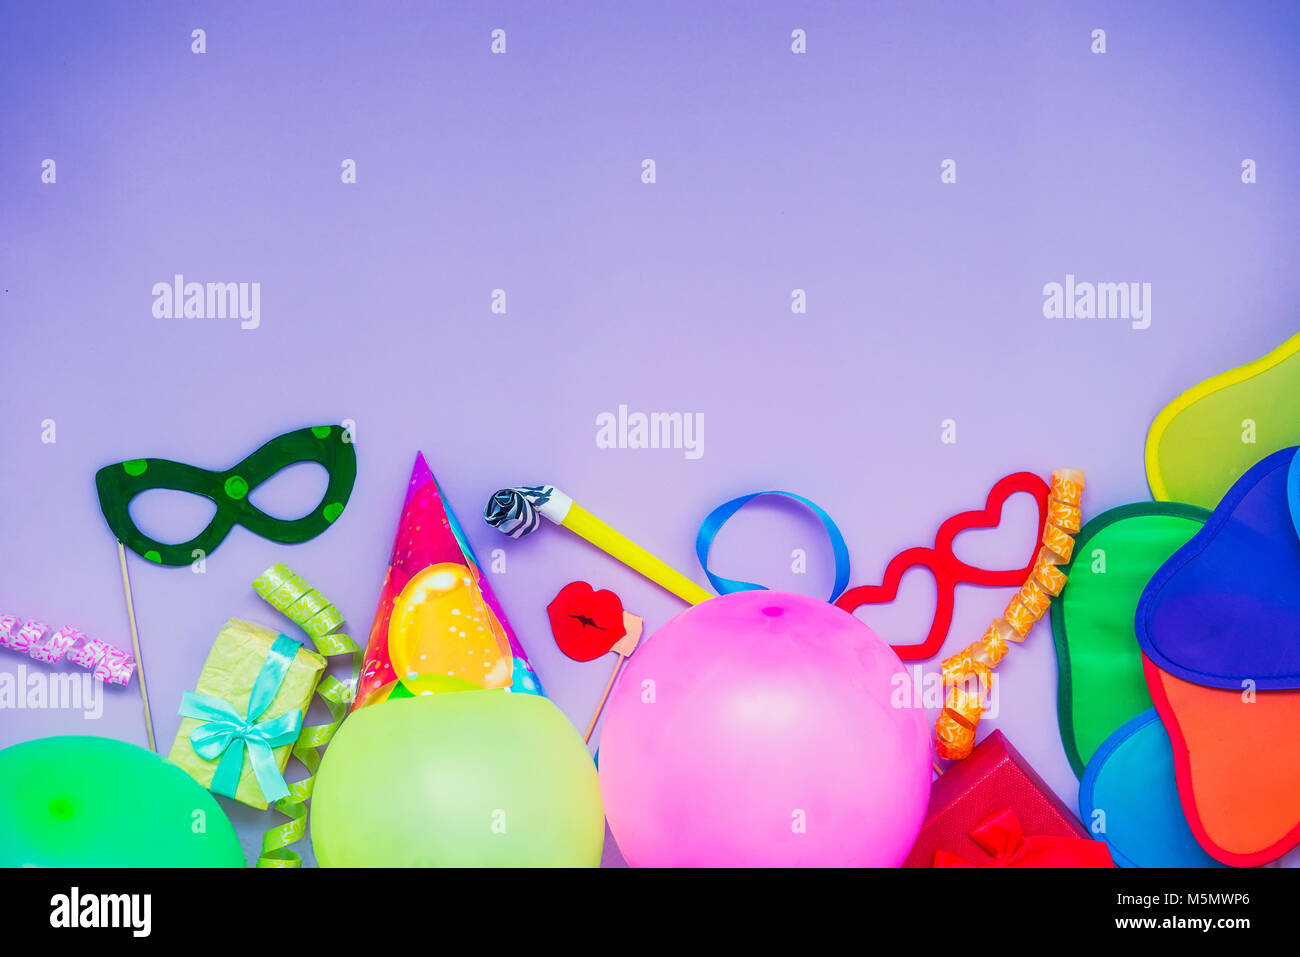 Top view bright party tools and decoration - baloons, funny carnival masks, festive tinsel on lilac background. - Stock Image